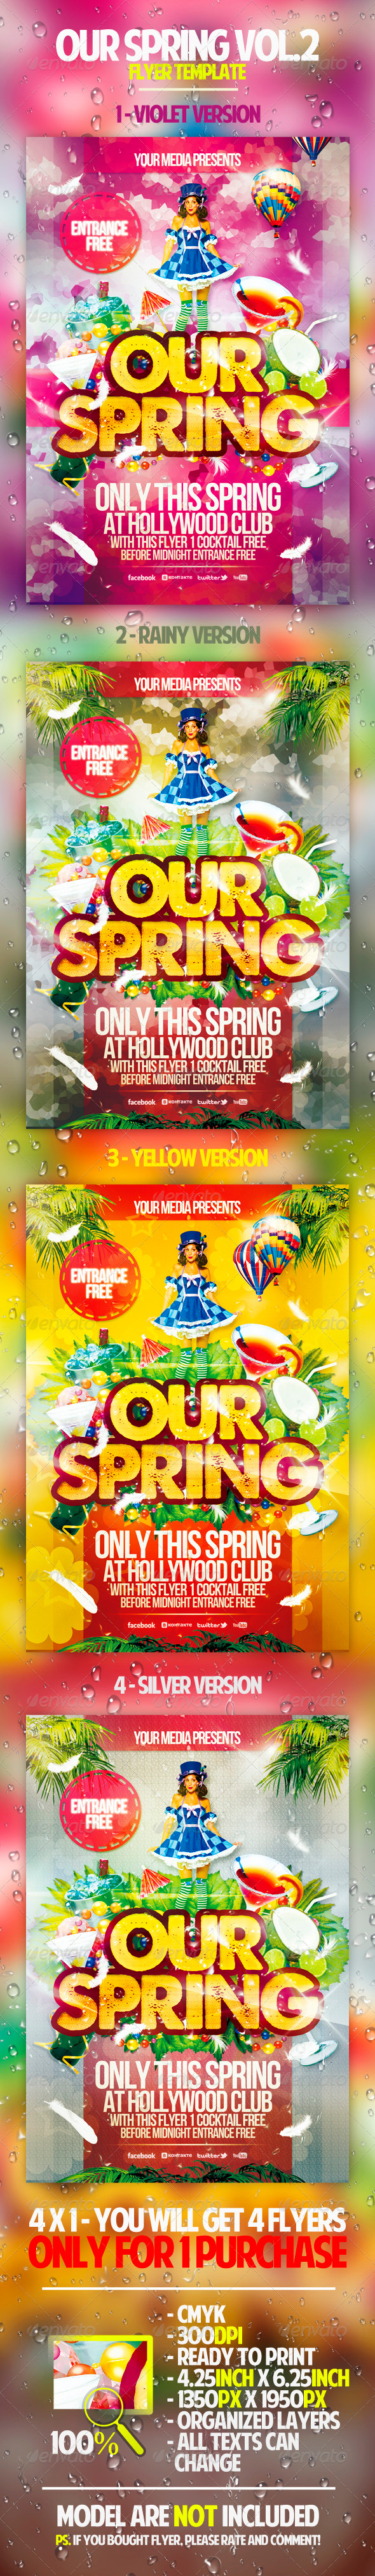 Our Spring Vol.2 Flyer Template - Holidays Events